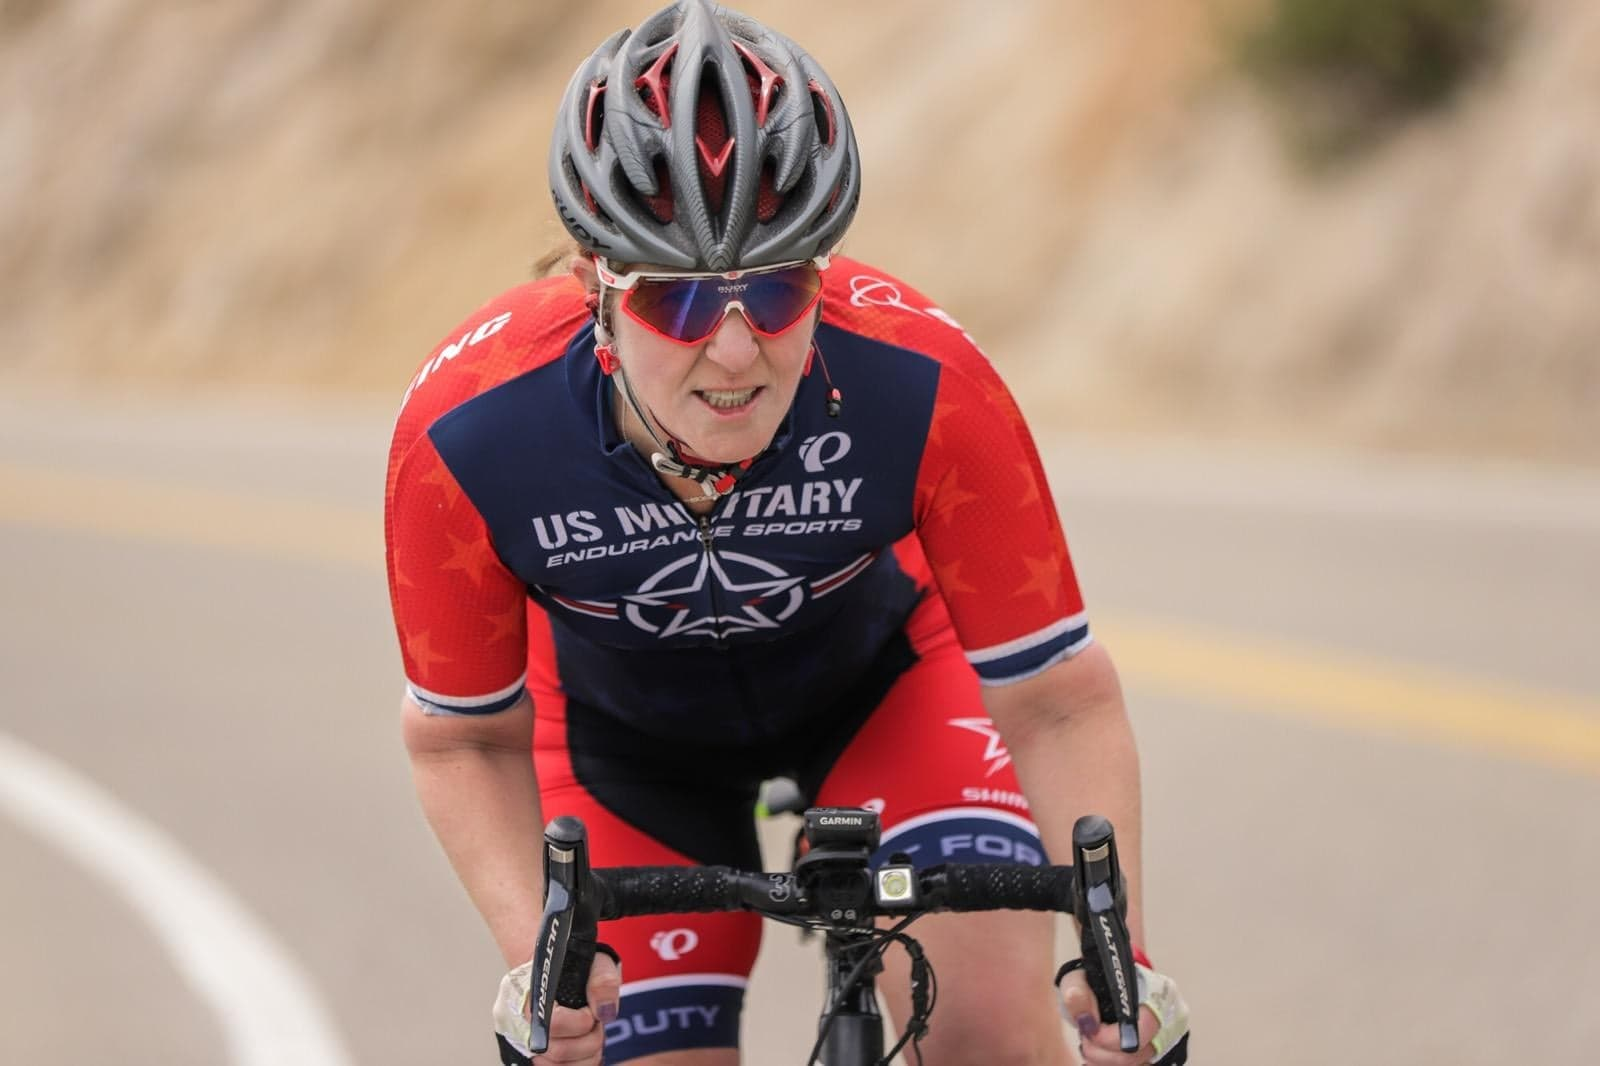 Mandy Midgett, Interim Executive Director of United States Military Endurance Sports